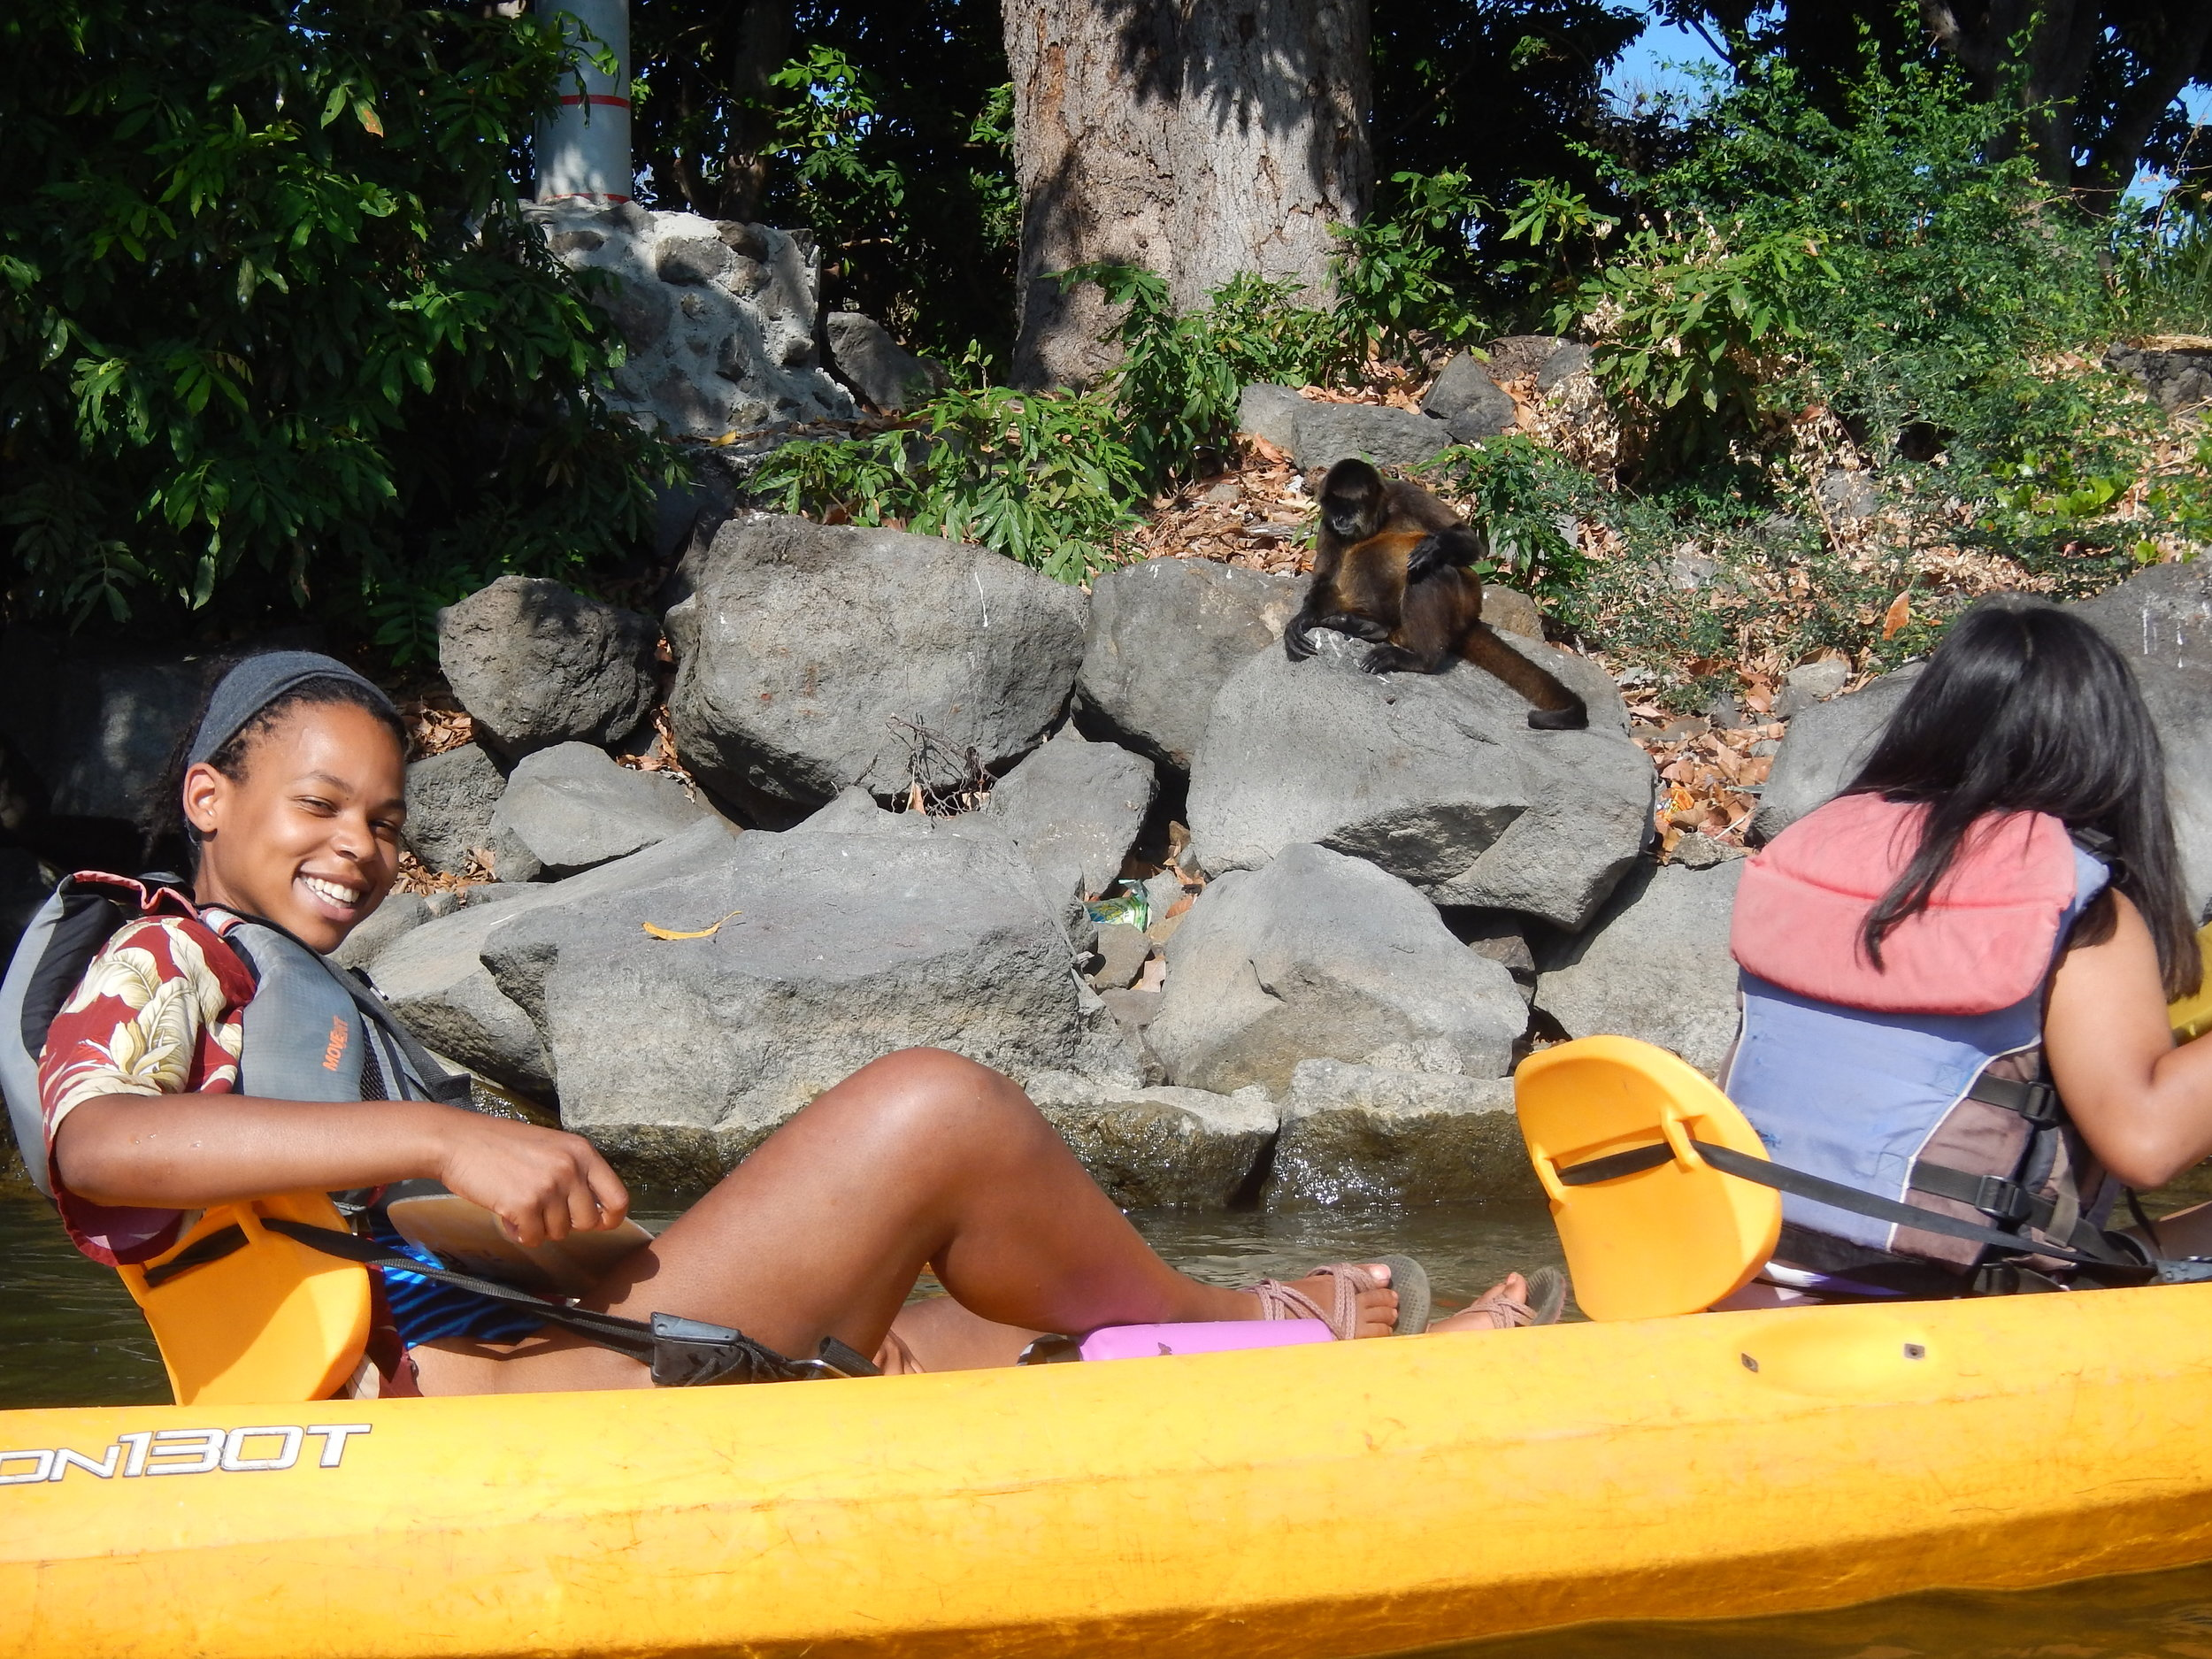 Me and Arisbeth kayaking to the spider monkey island